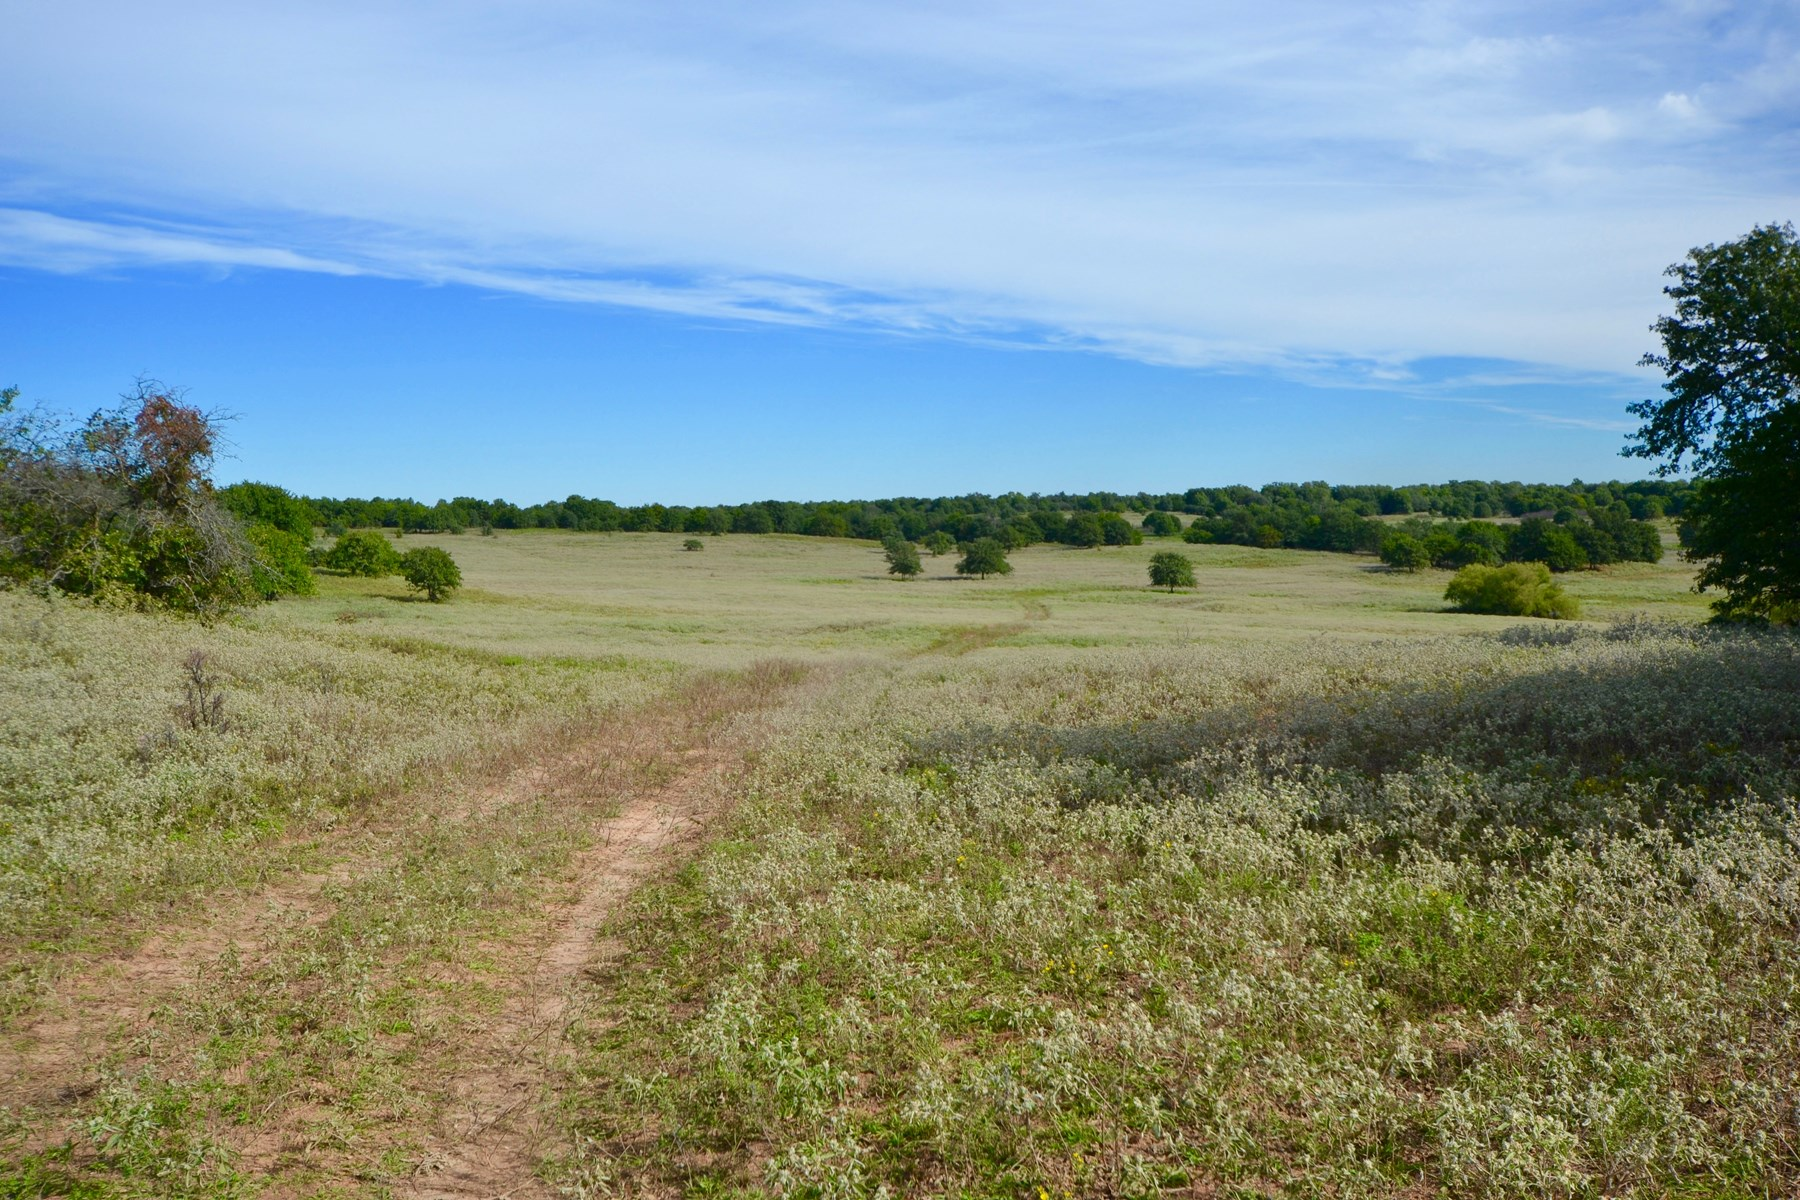 LAND PROPERTY FOR SALE CEMENT CADDO COUNTY OKLAHOMA REAL ESTATE AUCTION